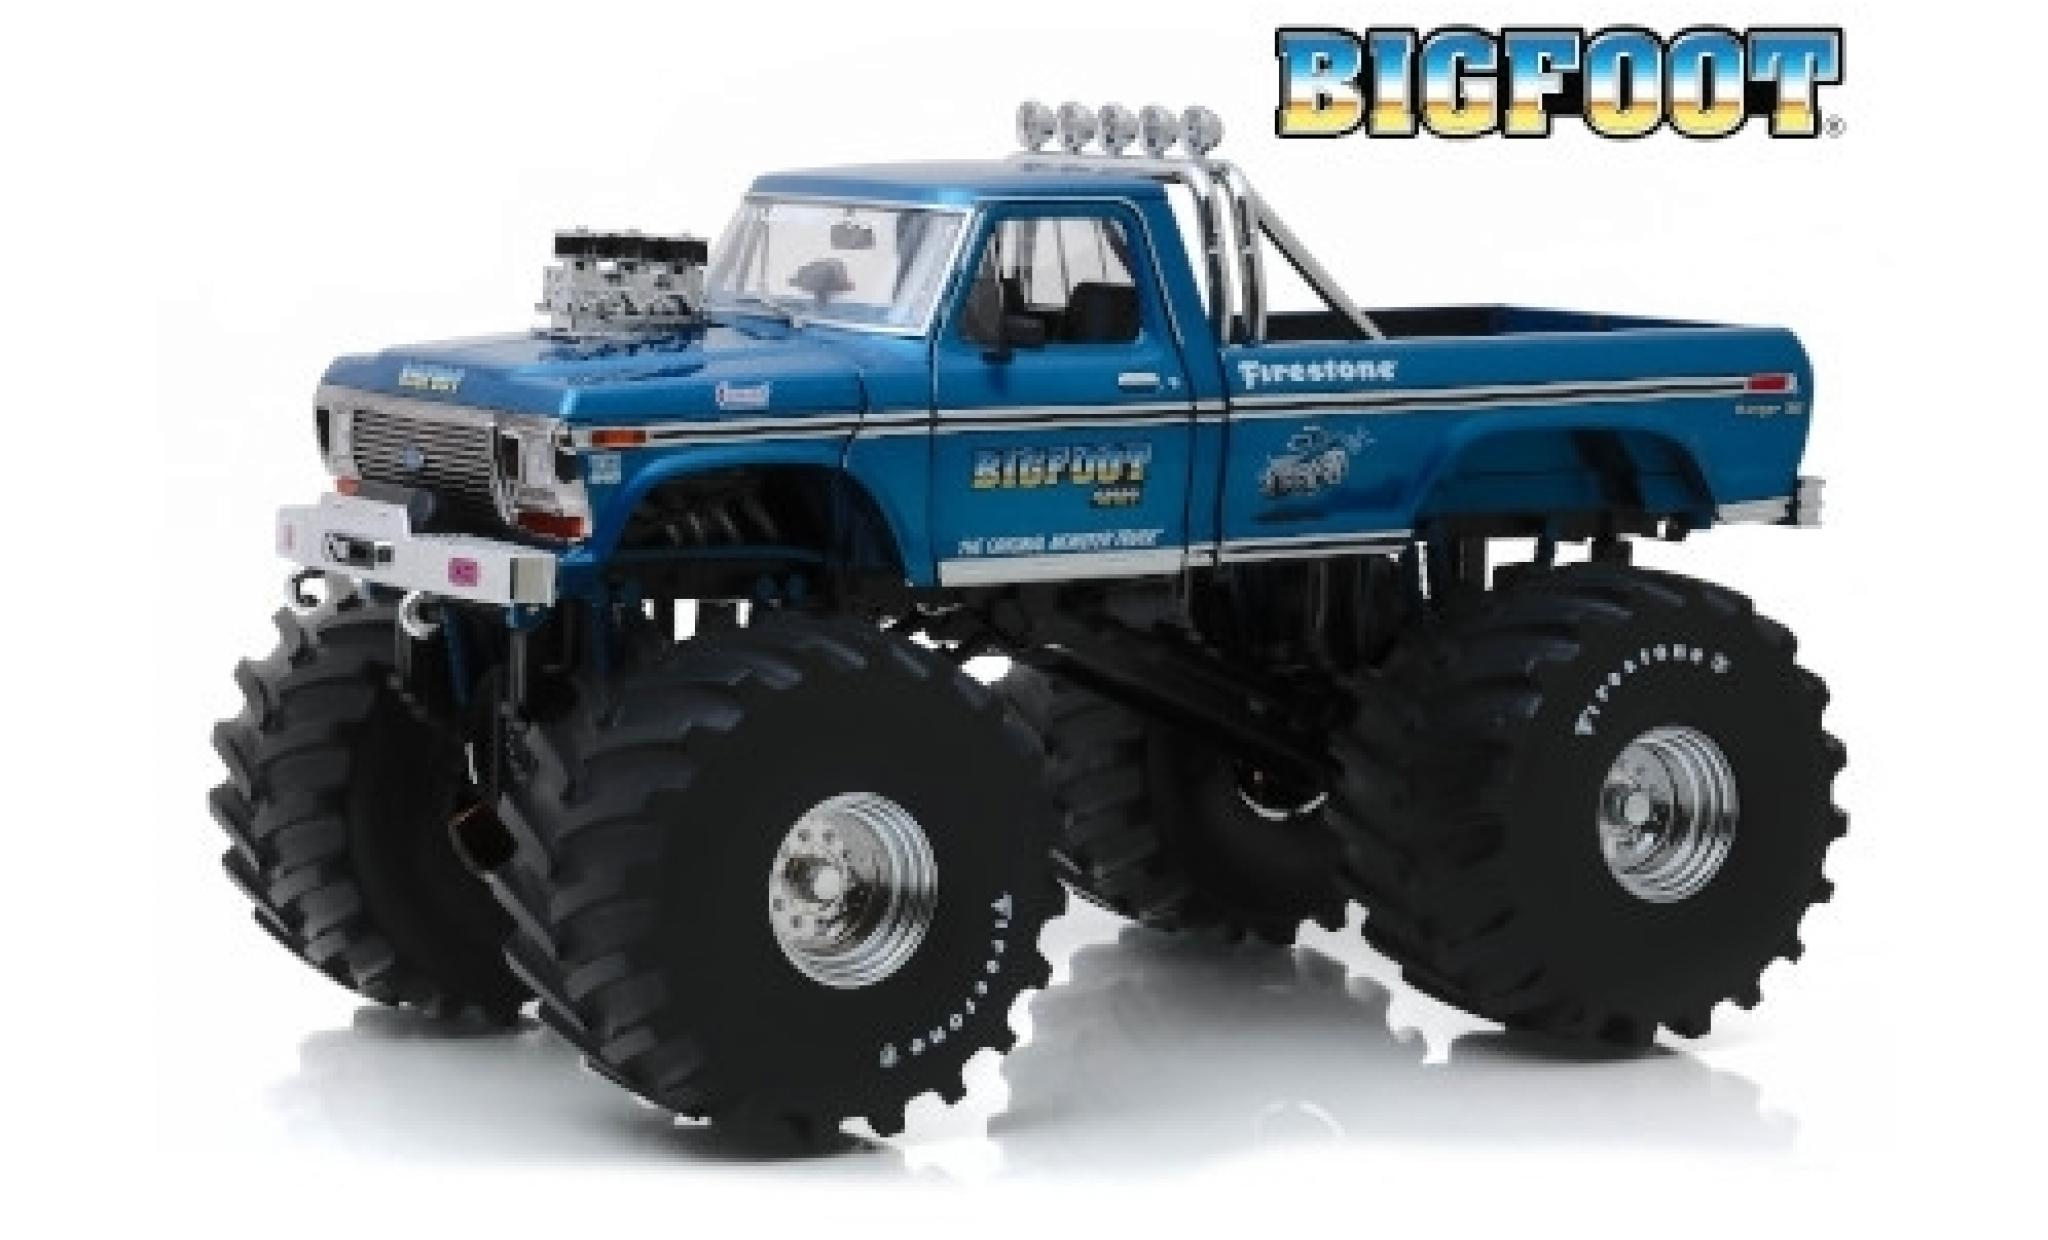 Ford F-250 1/18 Greenlight Monster Truck Bigfoot 1974 avec 66 Zoll-Bereifung